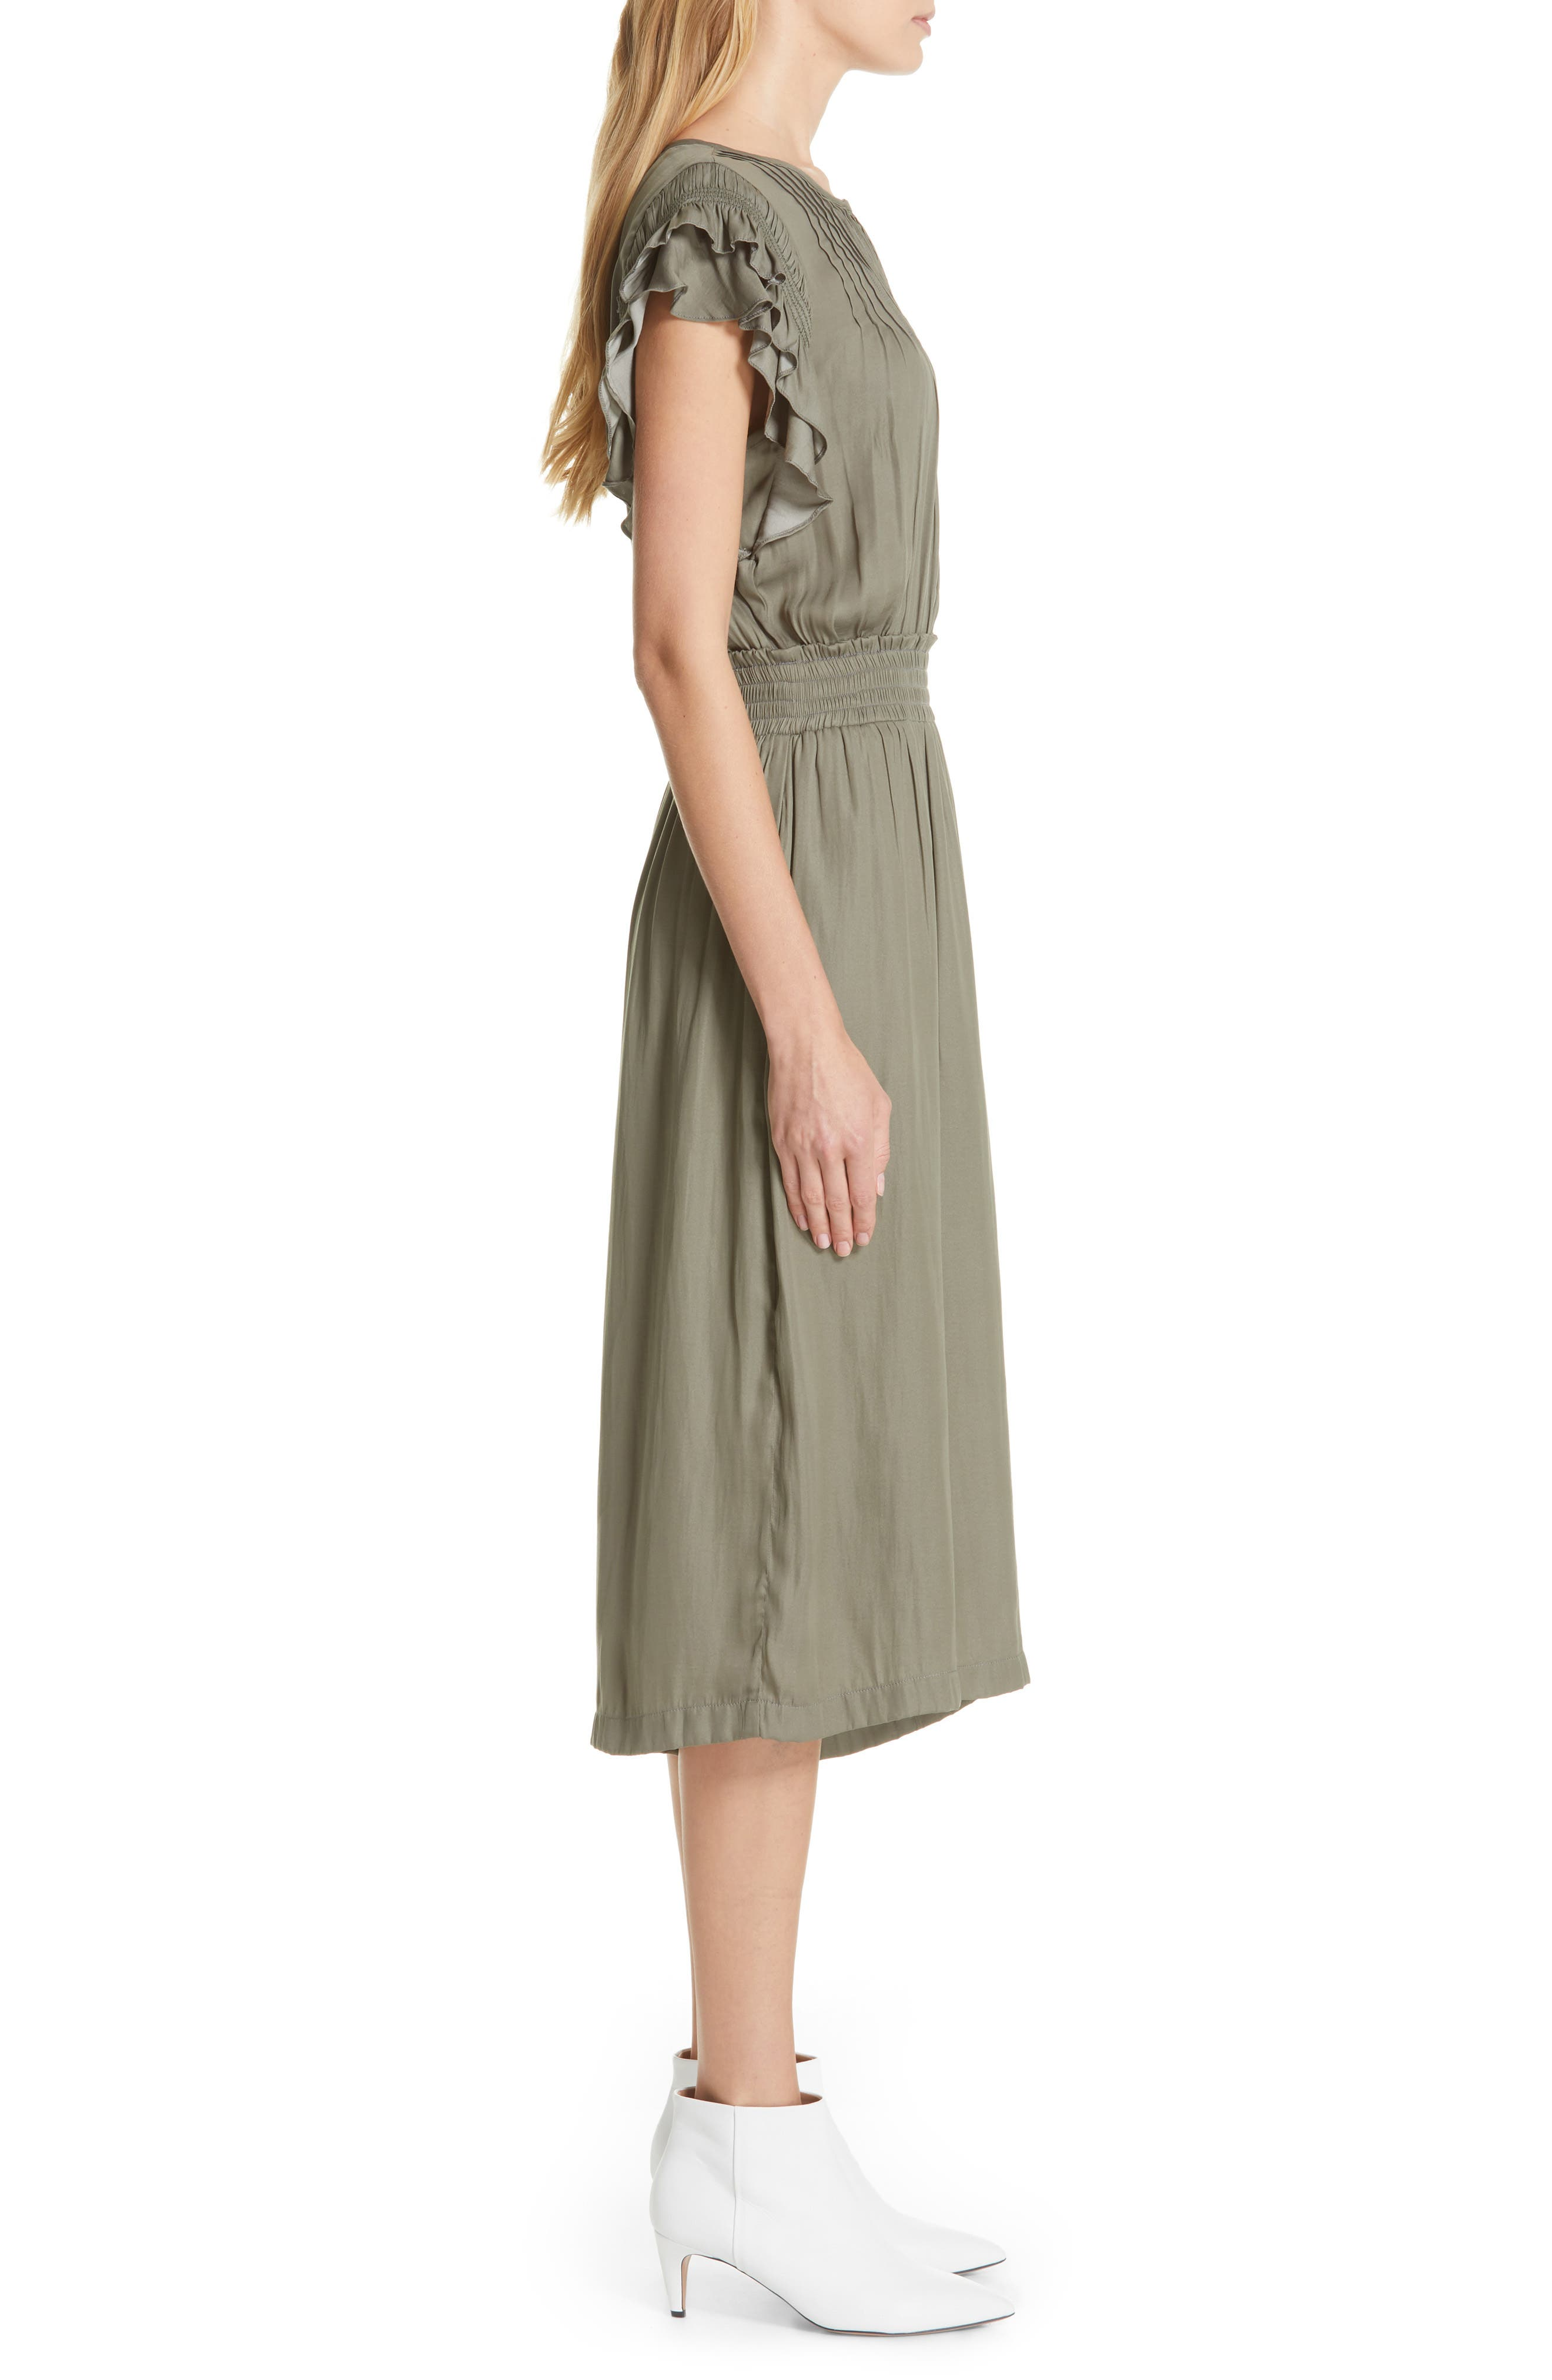 DOLAN, Carrie Pintucked Jumpsuit, Alternate thumbnail 4, color, SAGE